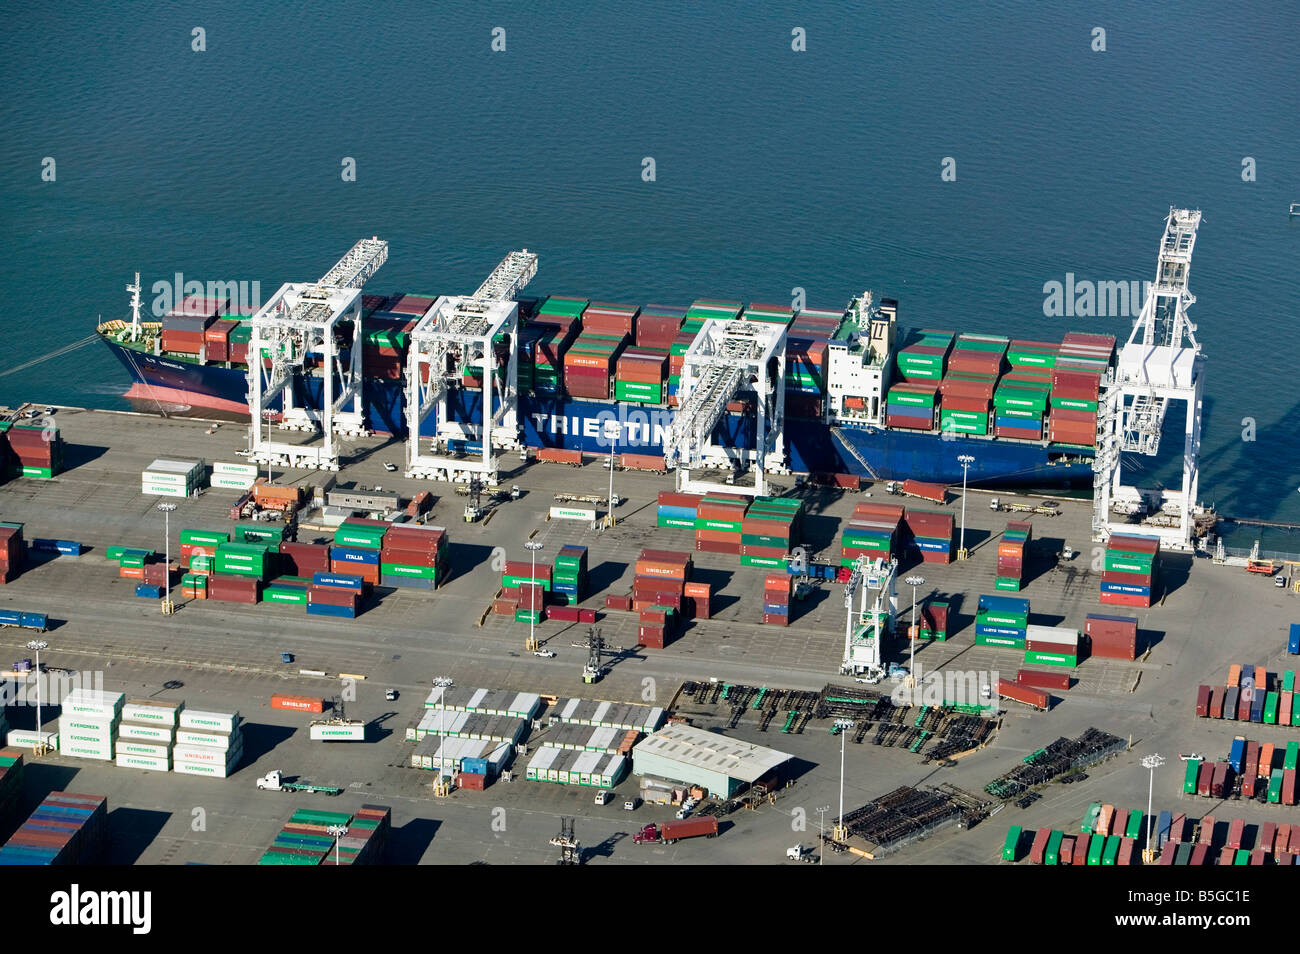 aerial view above cranes unloading Evergreen containers from containership Triestin Port of Oakland California - Stock Image